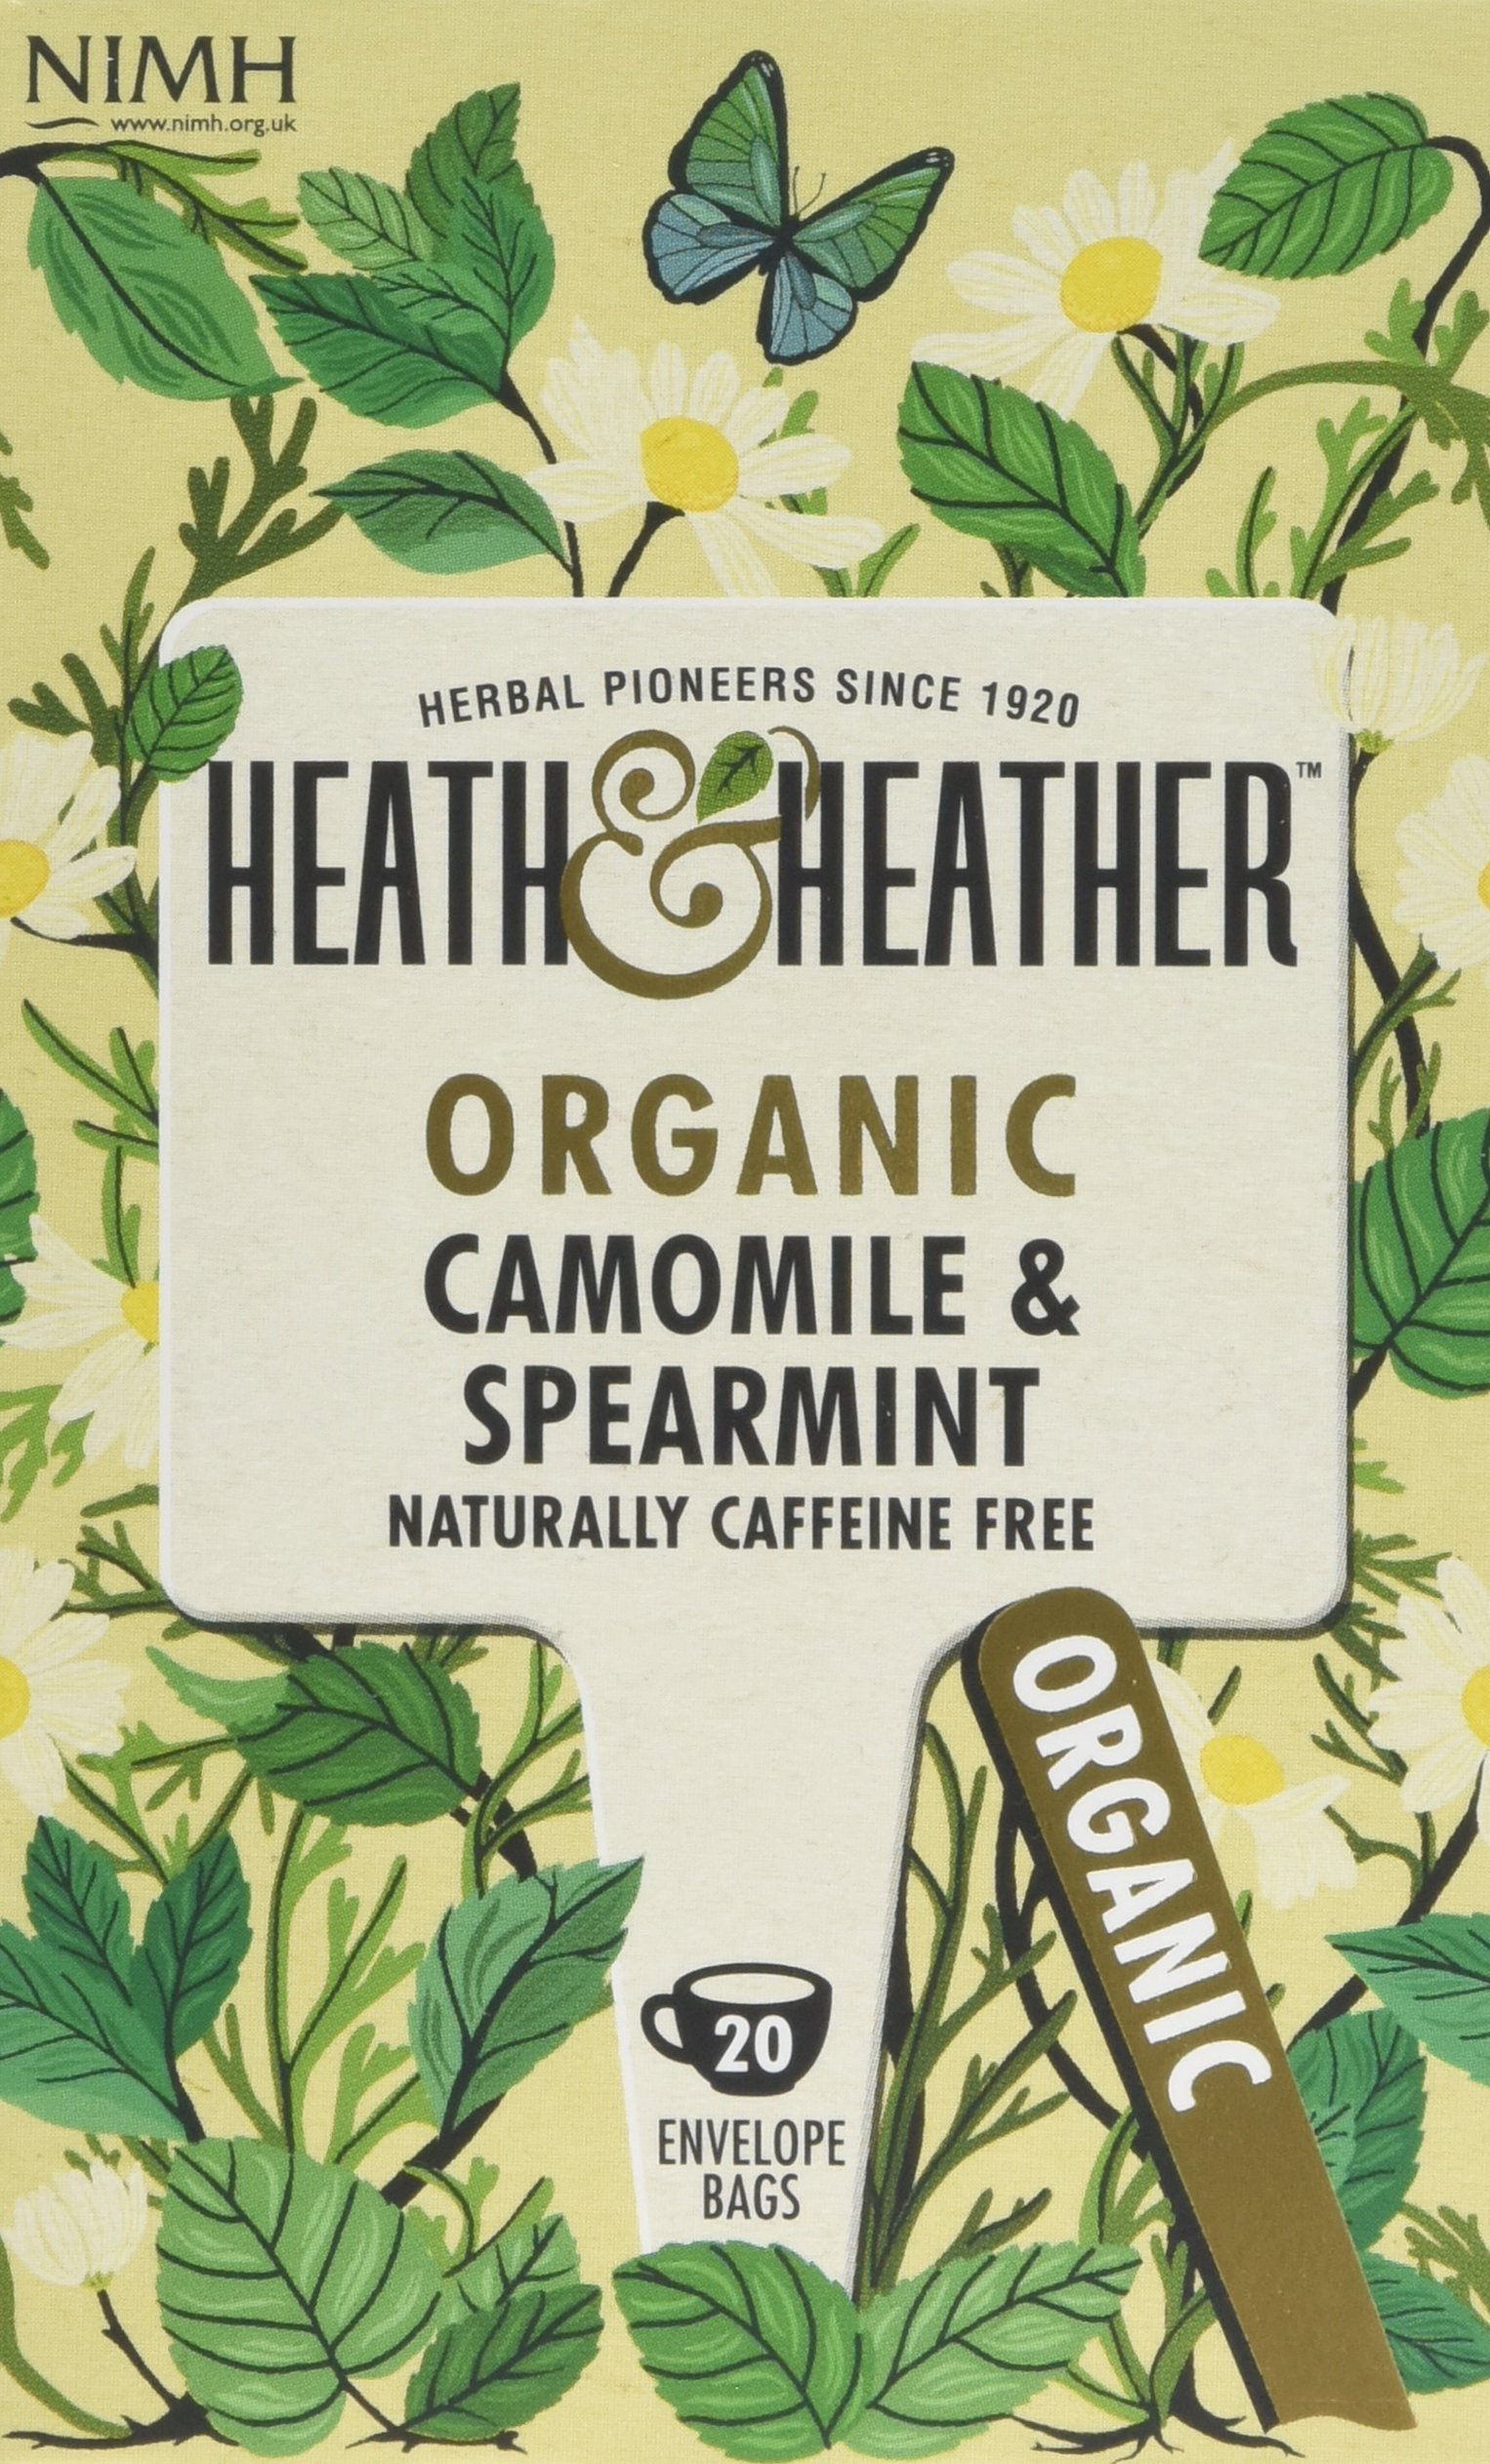 Heath & Heather organic chamomile and spearmint tea bundle (soil association) (infusions) (6 packs of 20 bags) (120 bags) (a spicy tea with aromas of camomile, spearmint) (brews in 3-5 minutes)